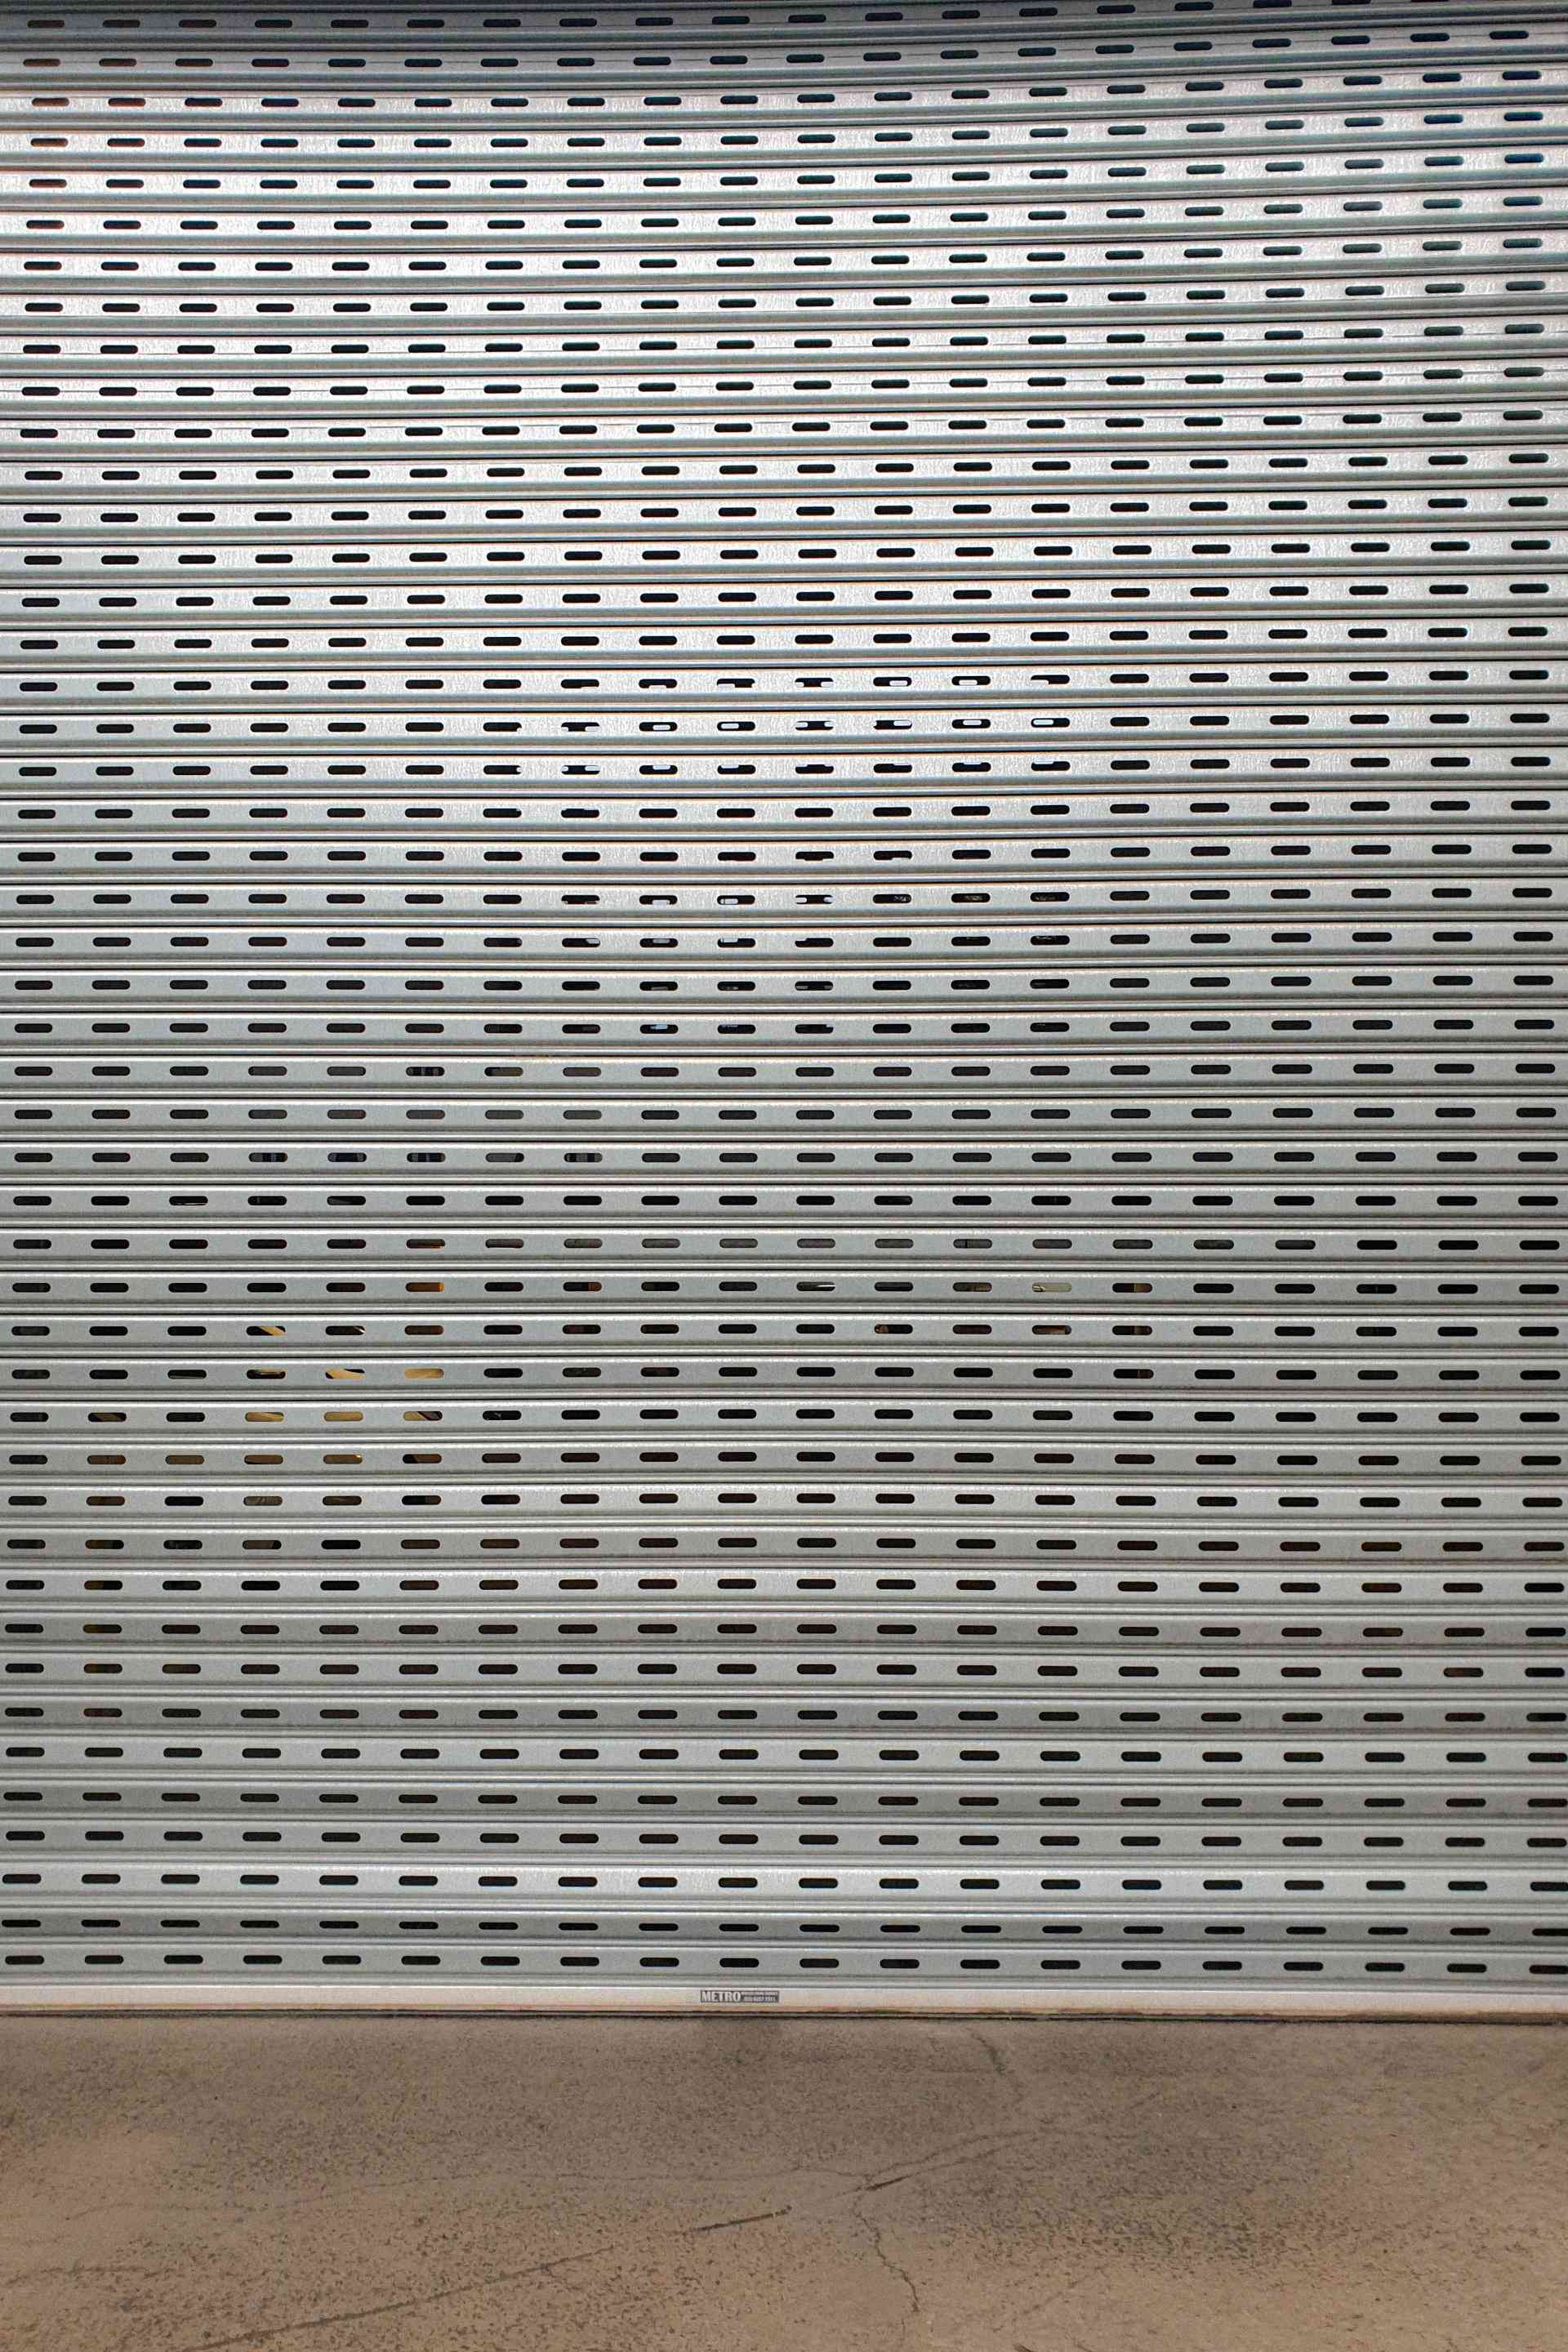 photo of a silver, perforated roller shutter with a small area of brown polished concrete visible below it